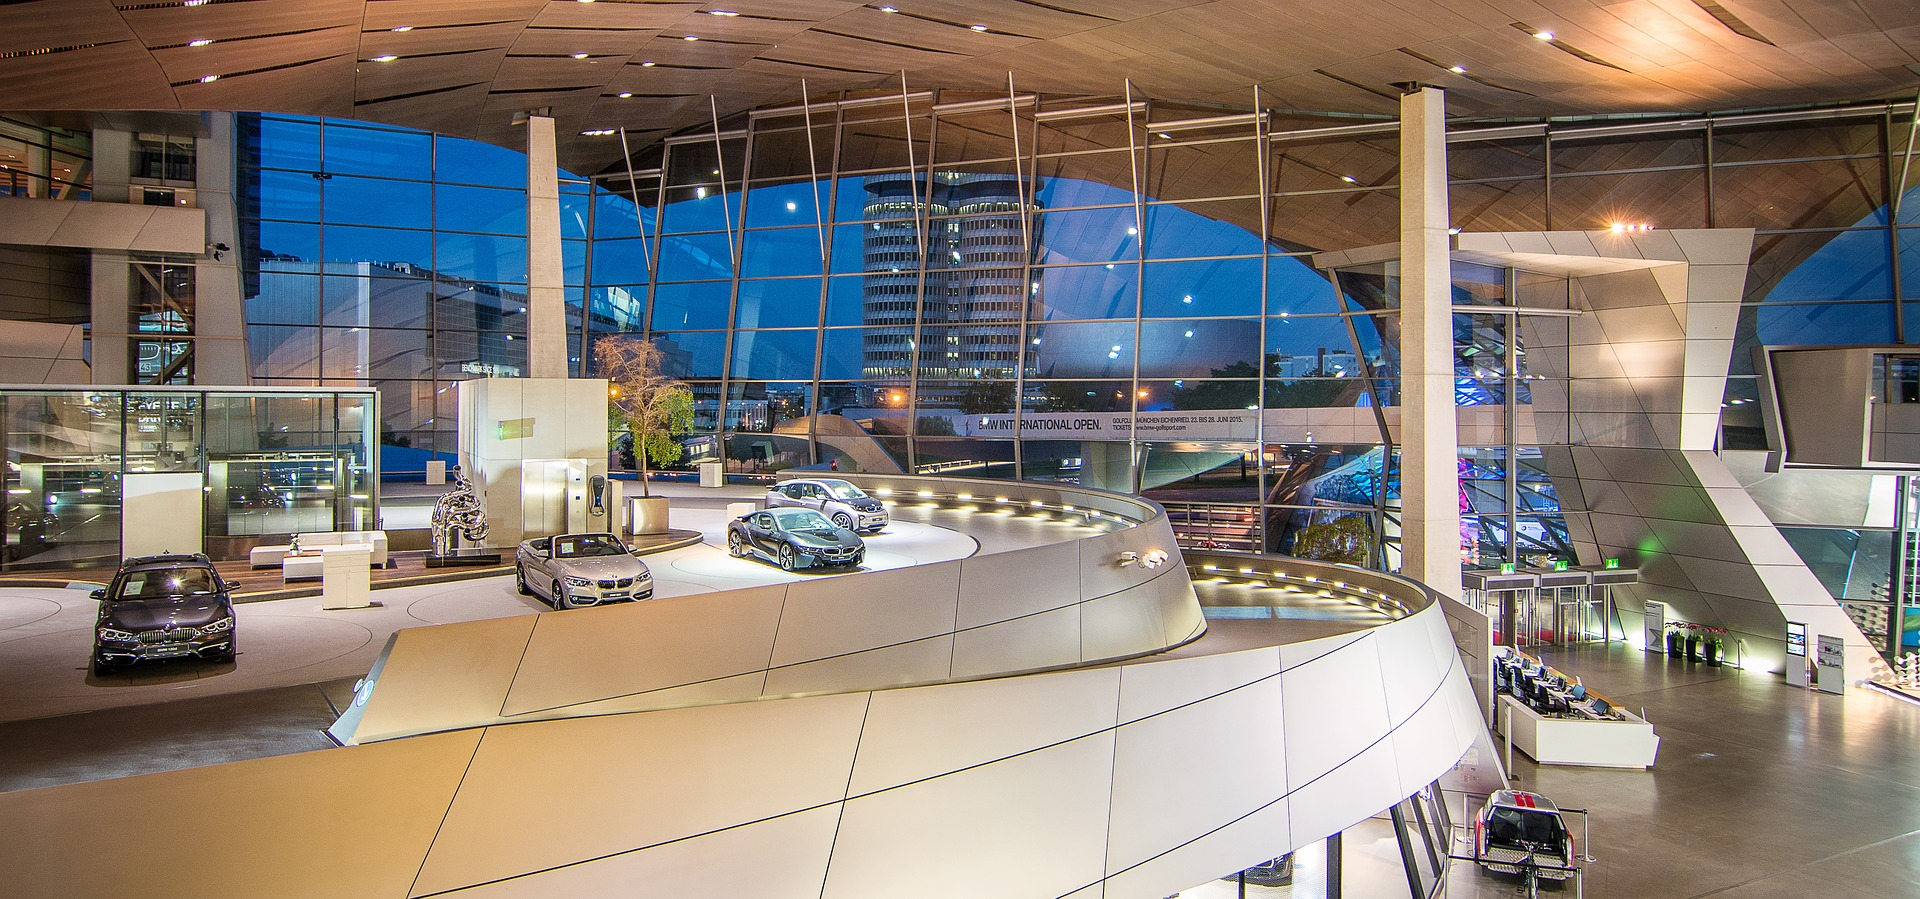 Inside BMW Welt (BMW World), Munich, Germany